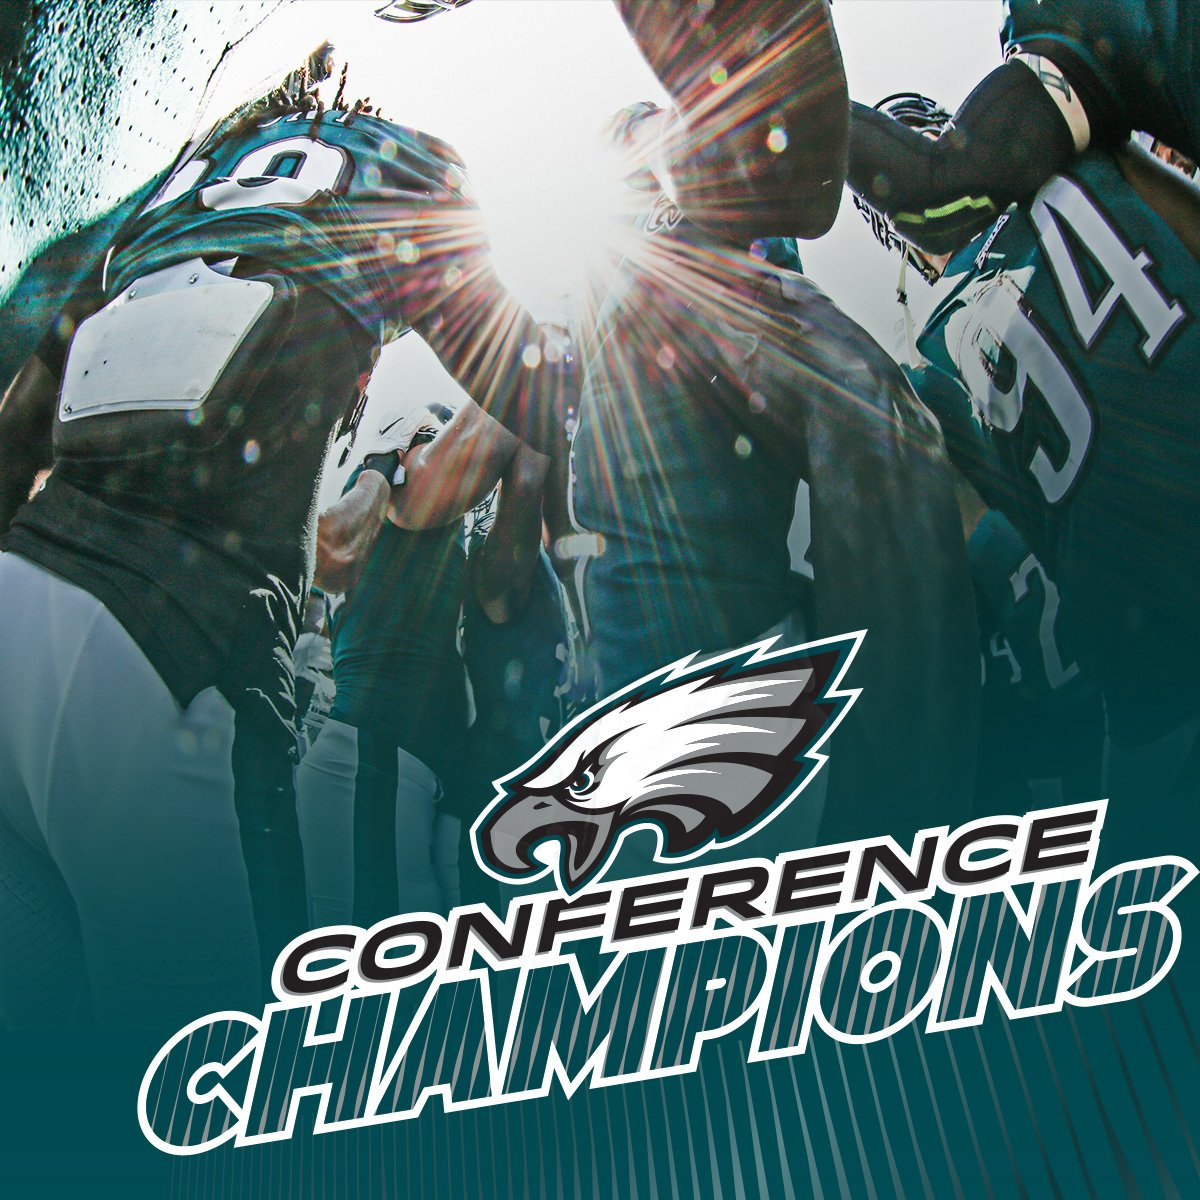 NFC CHAMPS!  #FlyEaglesFly https://t.co/ixTyxVRpcg